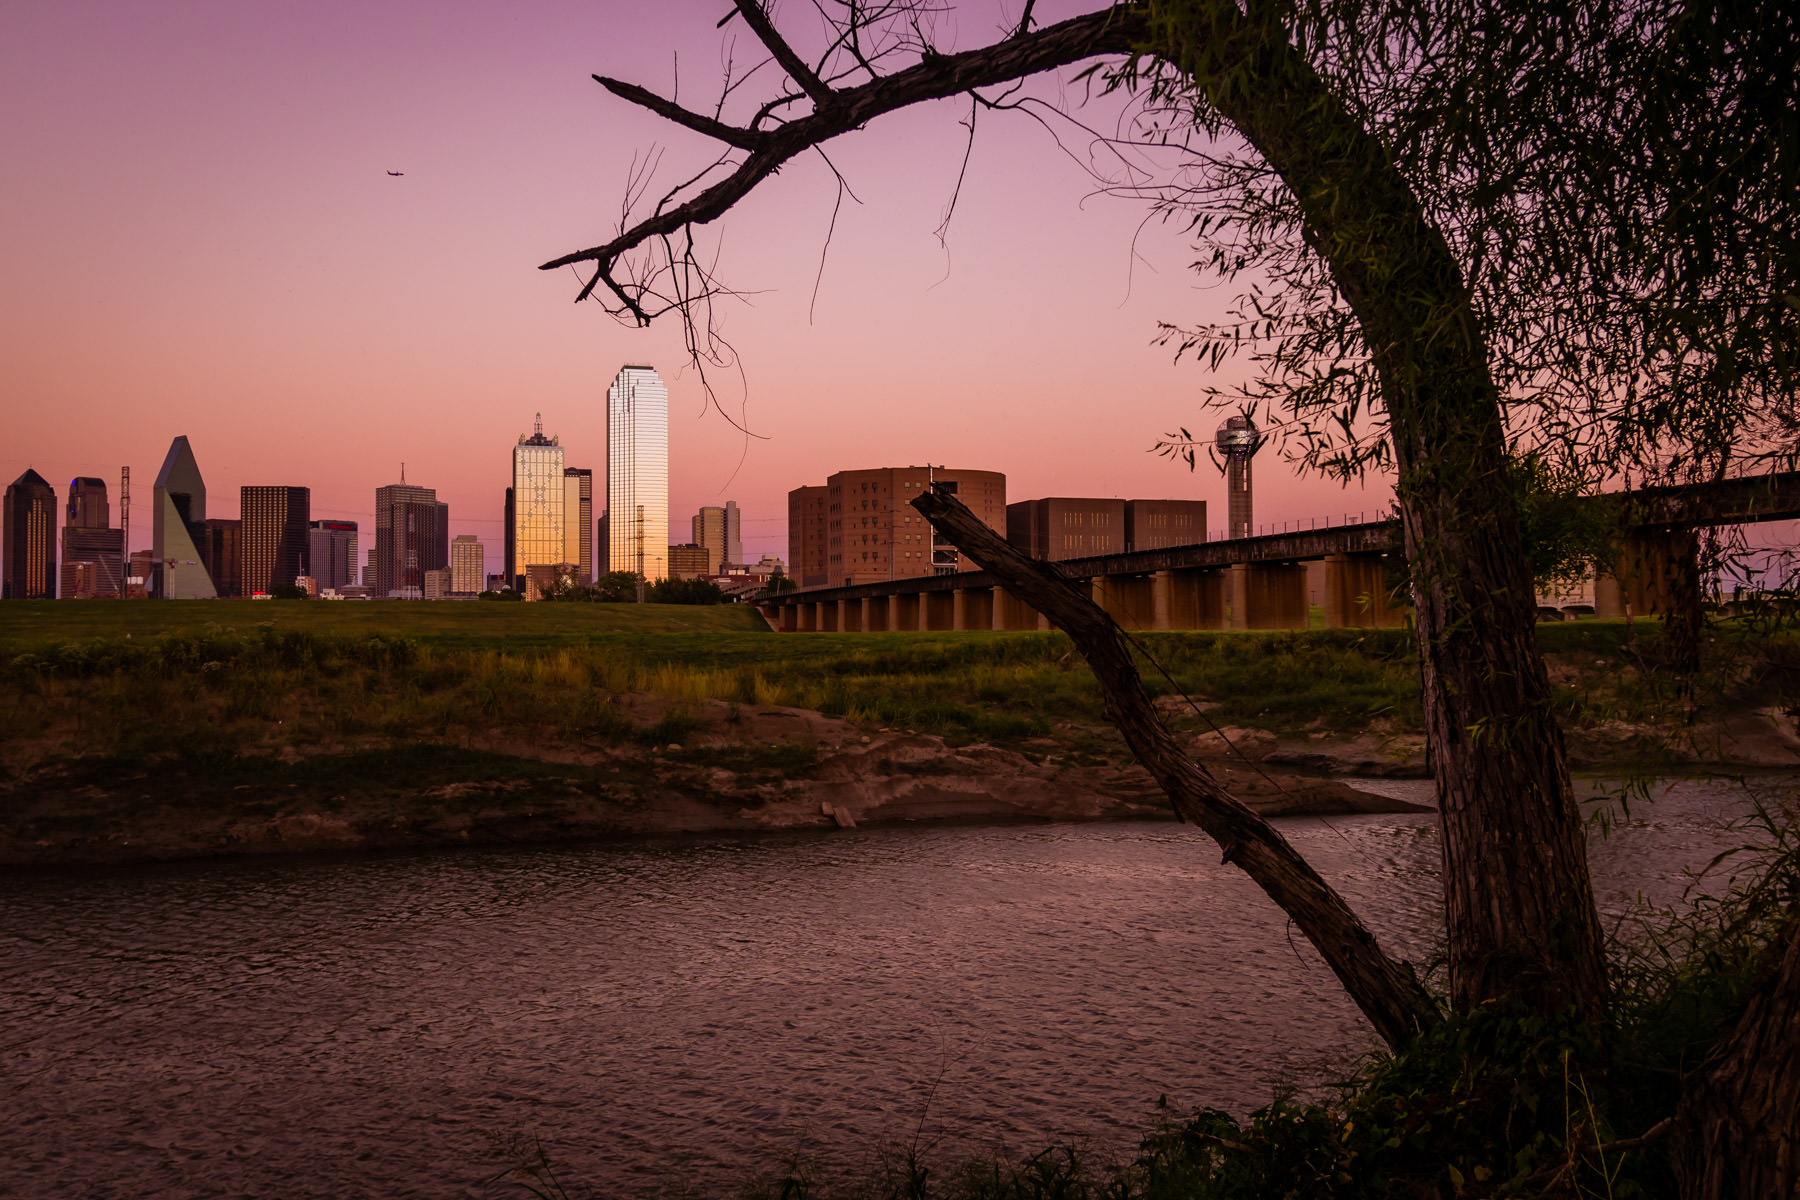 The last light of the day illuminates the Dallas skyline.